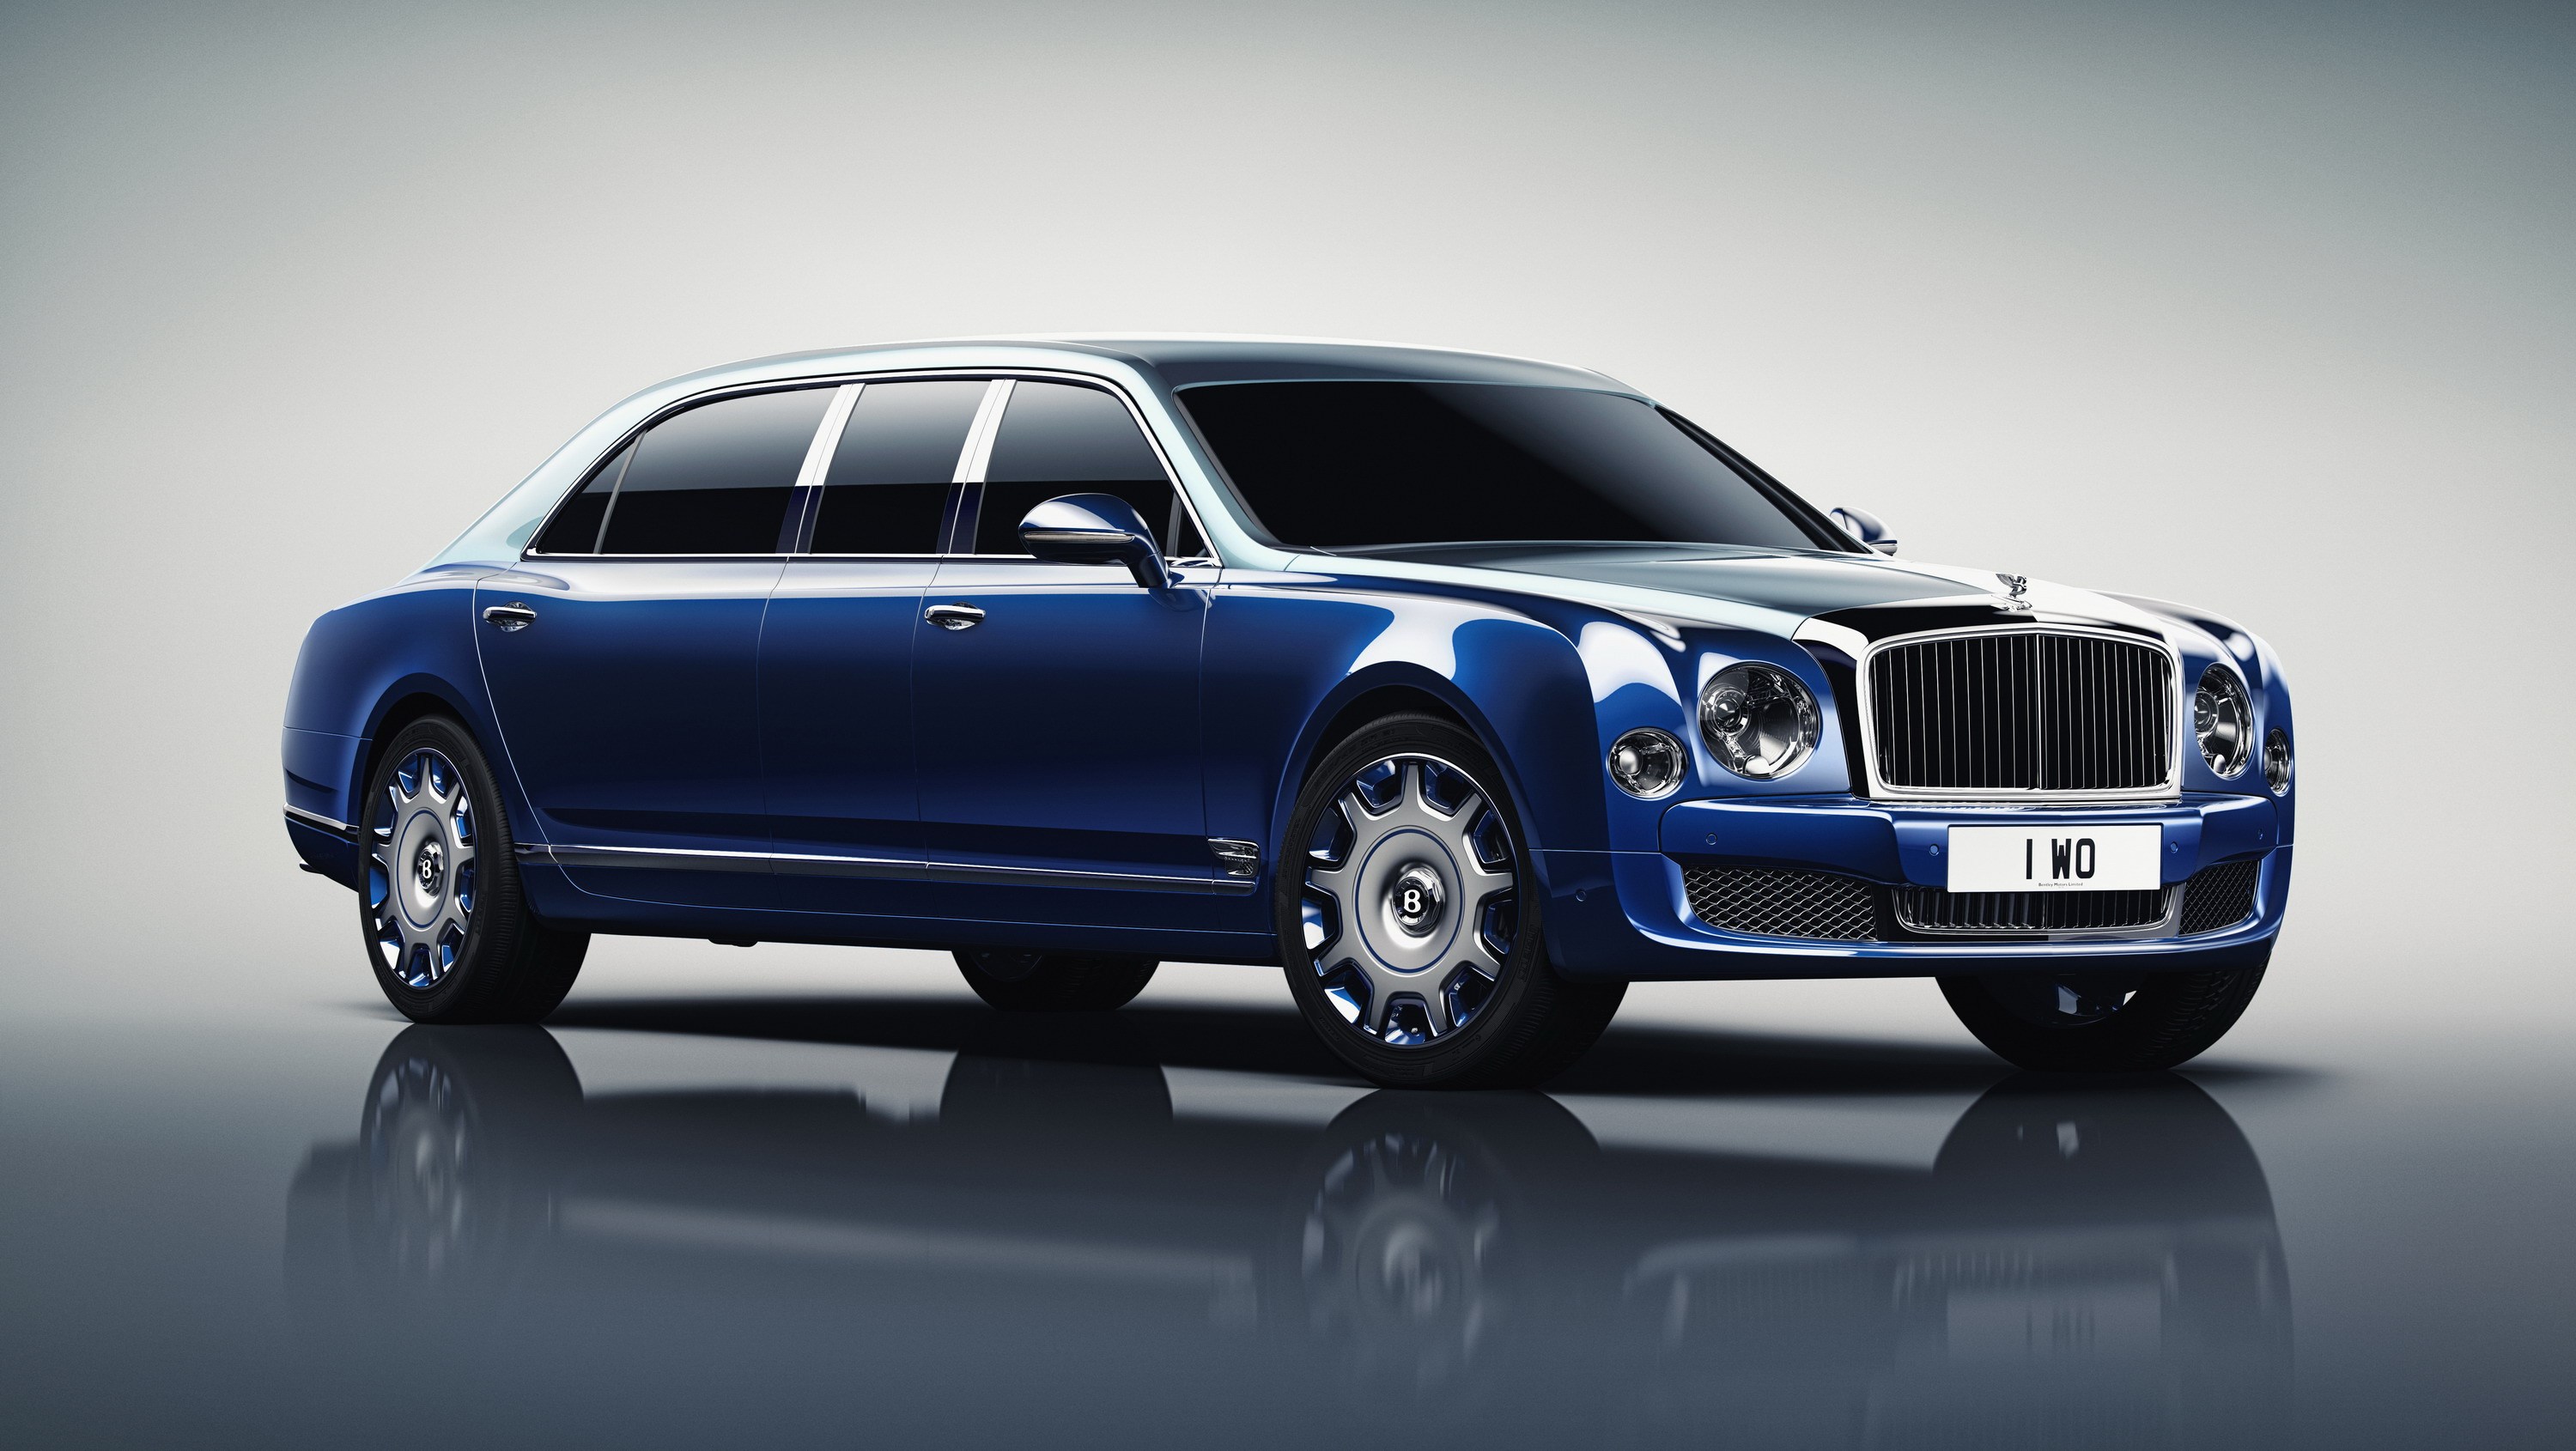 Bentley mulsanne limo price